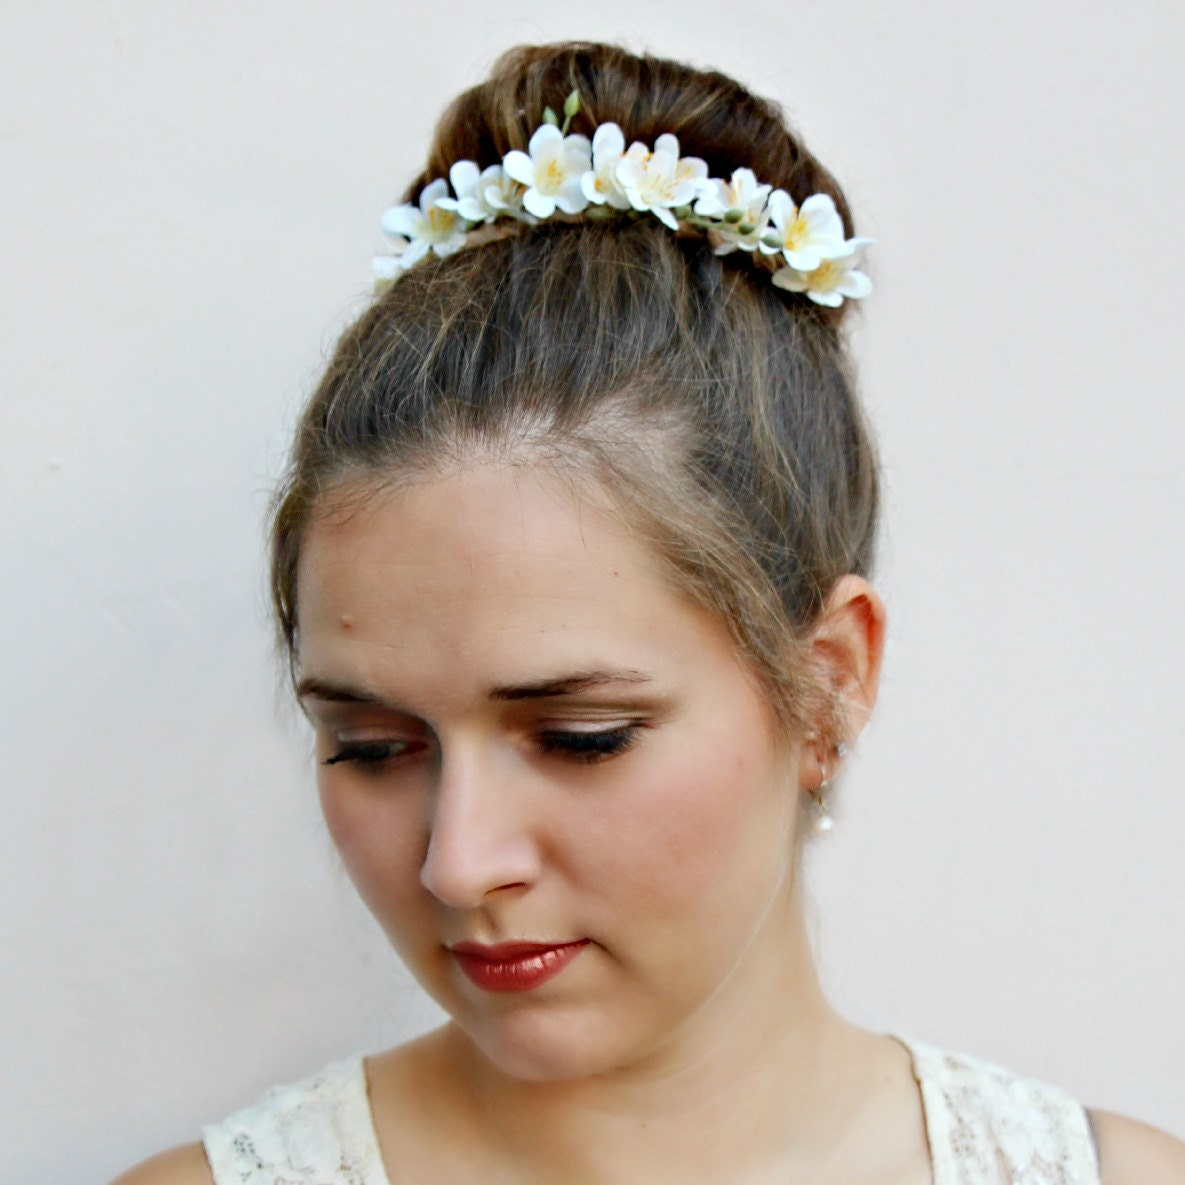 Liliana floral bun belt flower crown for your hair bun coachella liliana floral bun belt flower crown for your hair bun coachella flower crown hair bun accessories flower crown bridal hair crown izmirmasajfo